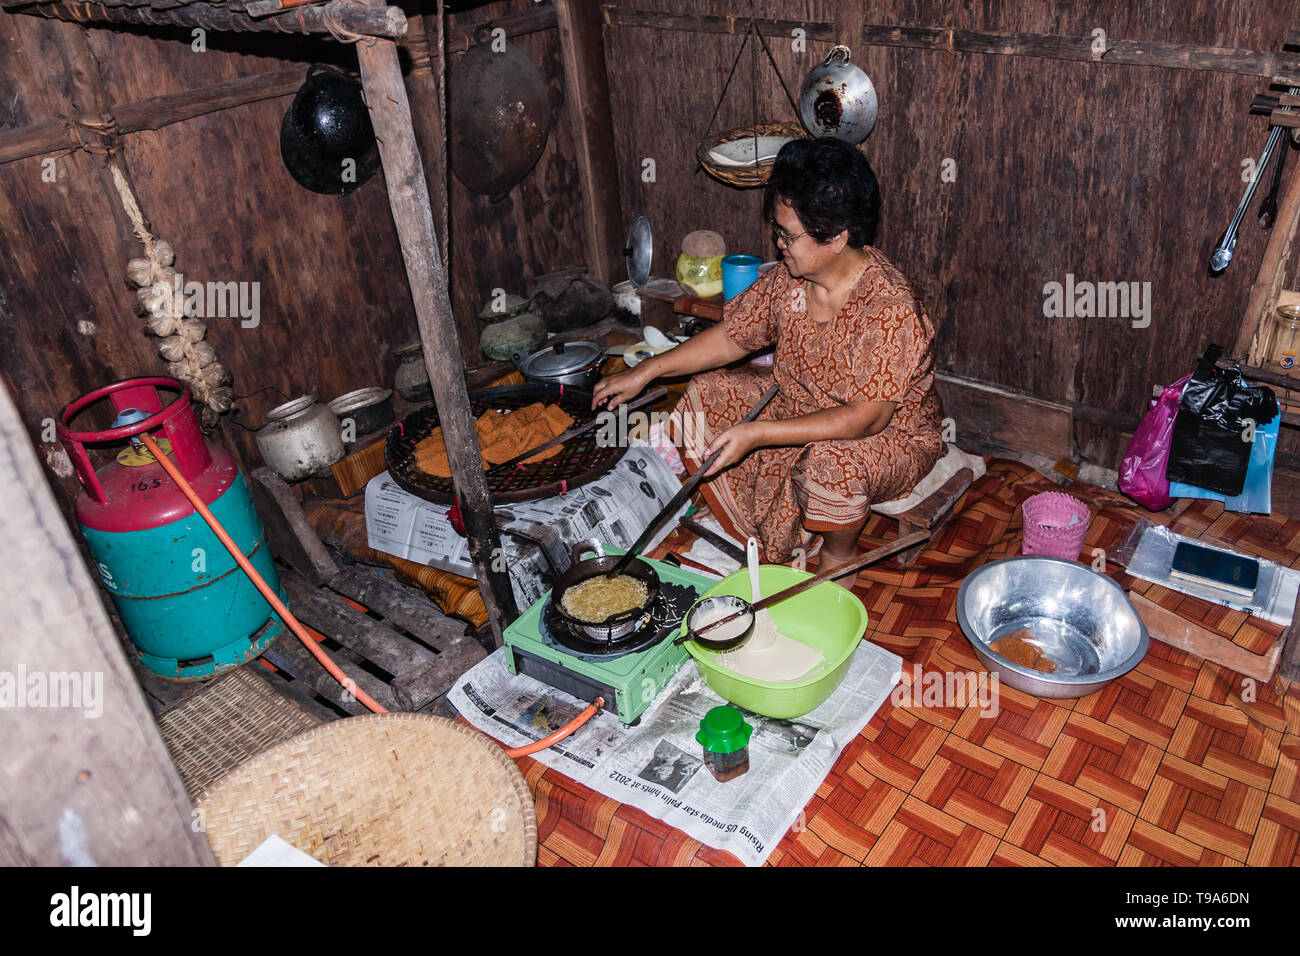 A Malayan woman cooking traditional pancakes in the Iban ethnic house. Sarawak - Stock Image